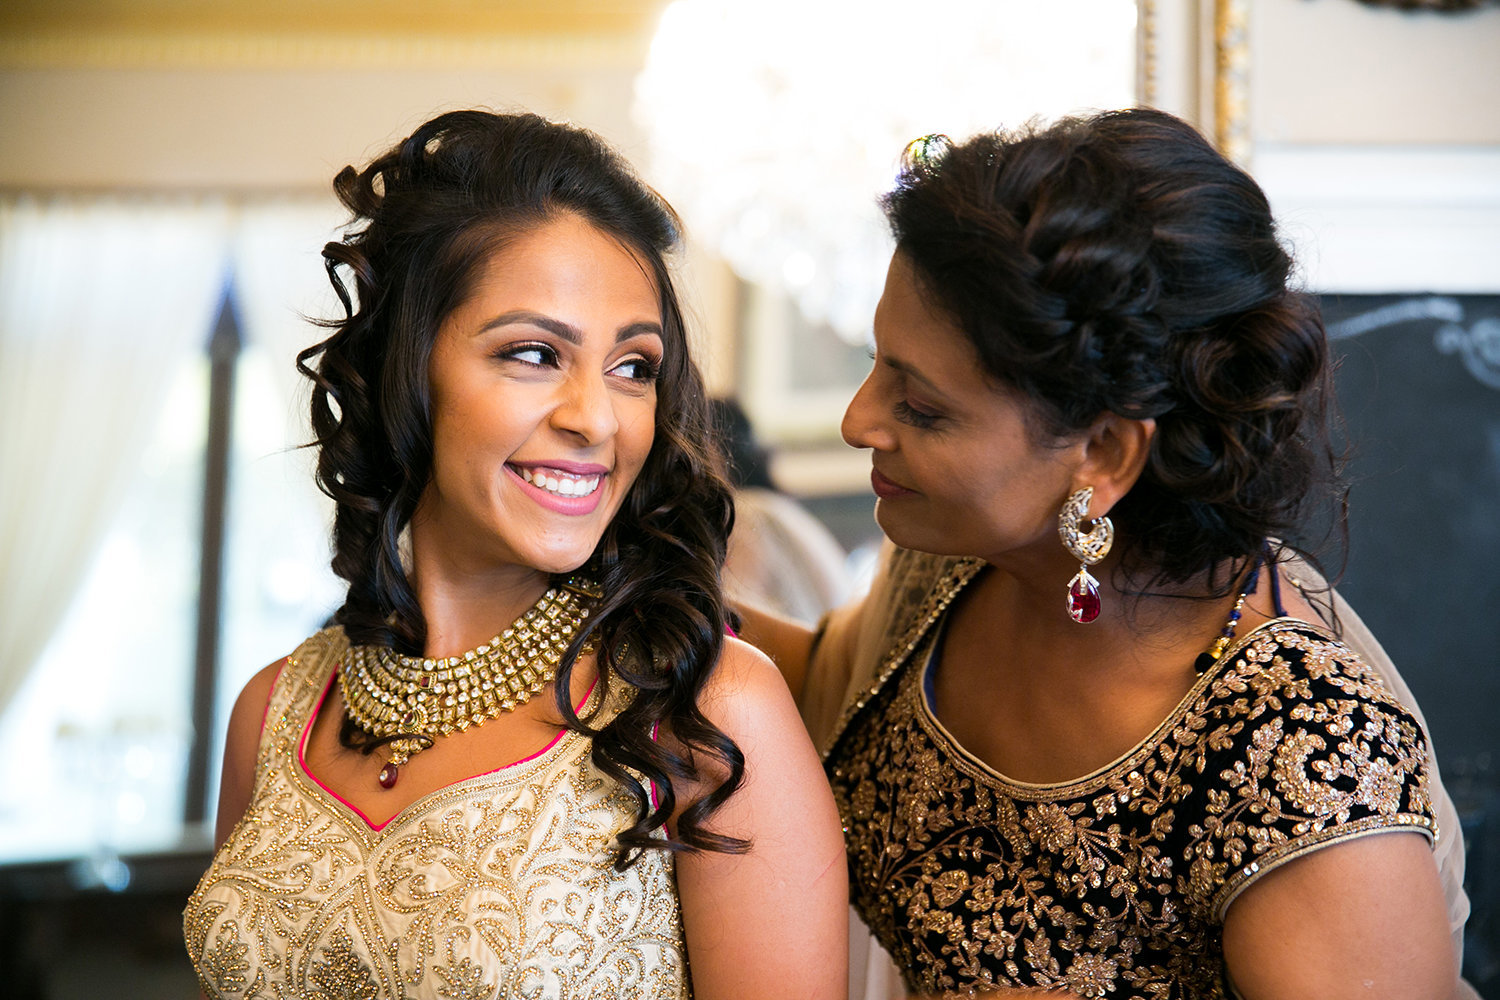 Sweet moment between mother and daughter before Hindu Indian wedding ceremony